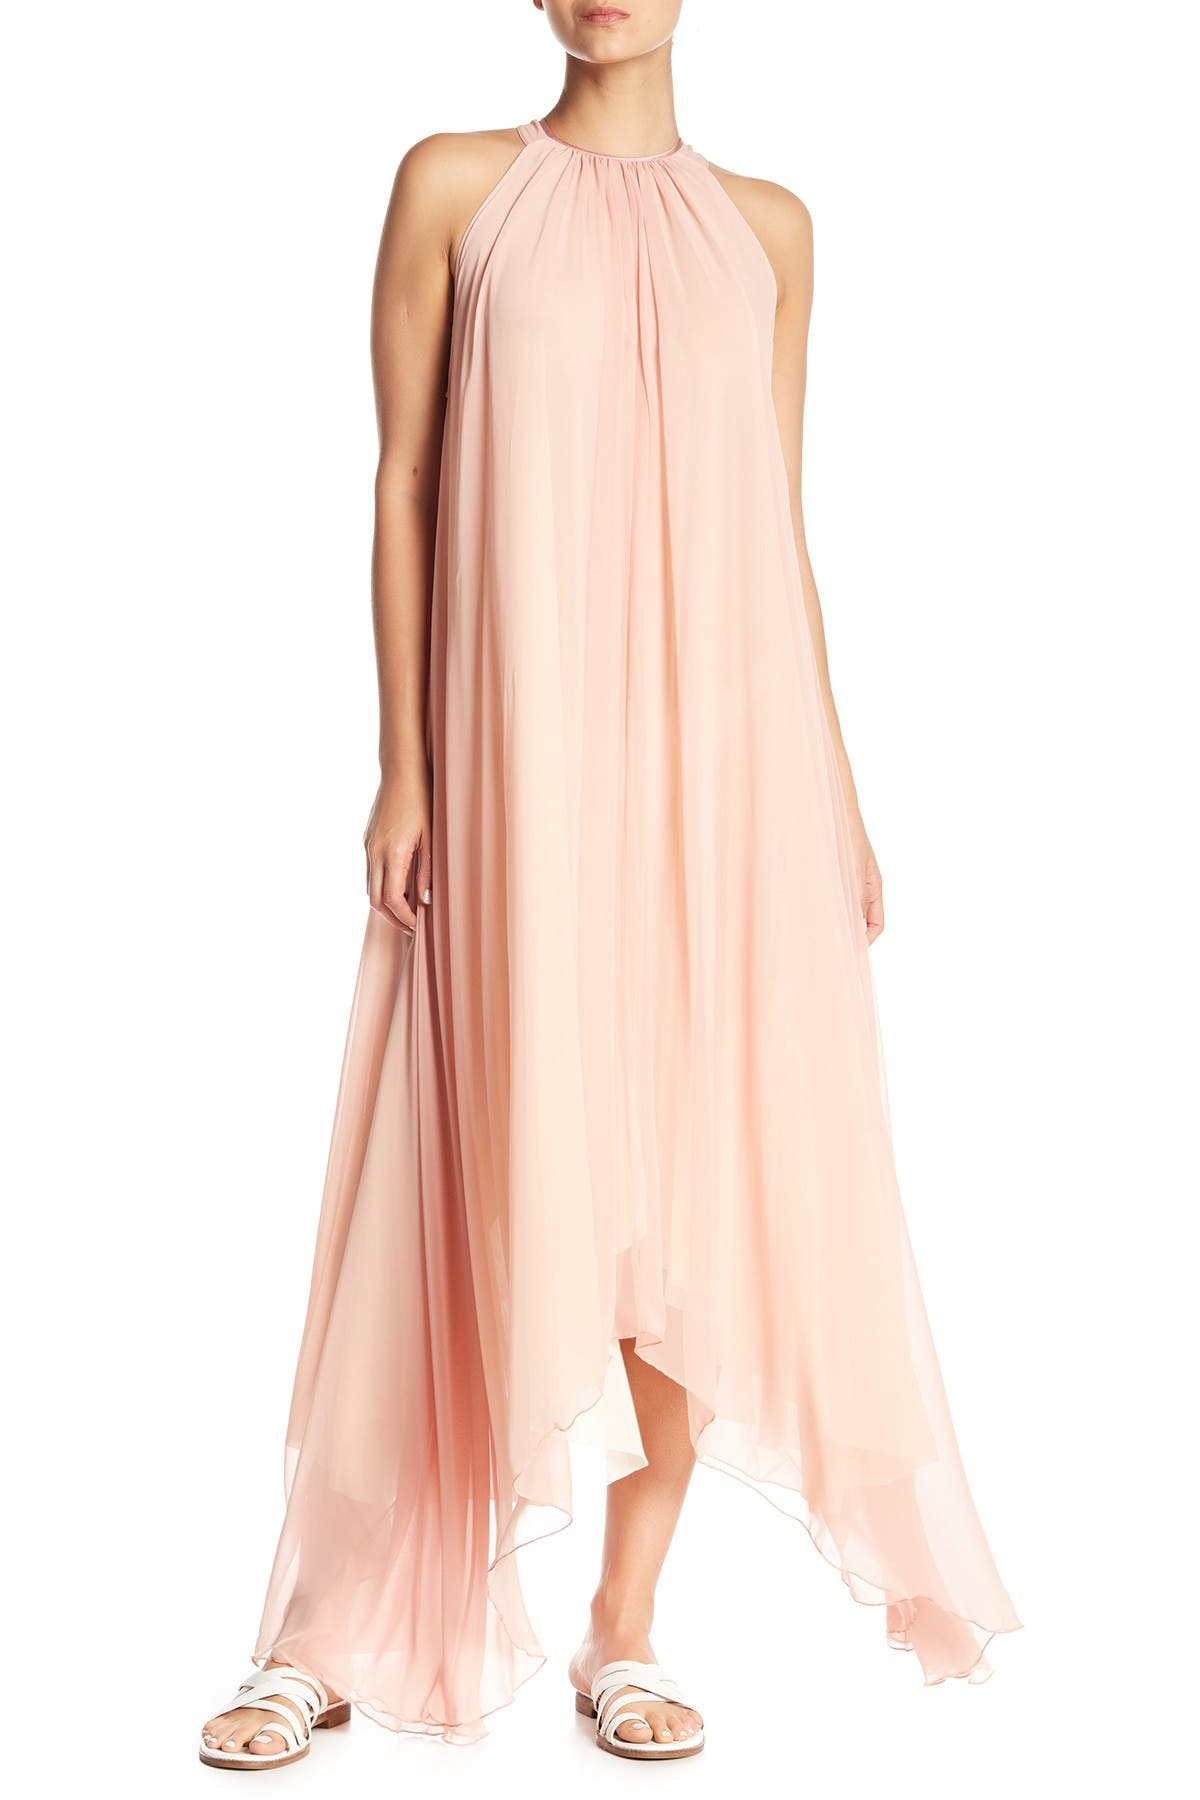 Image of HAH | Hot-As-Hell Solid Maxi Cover-Up